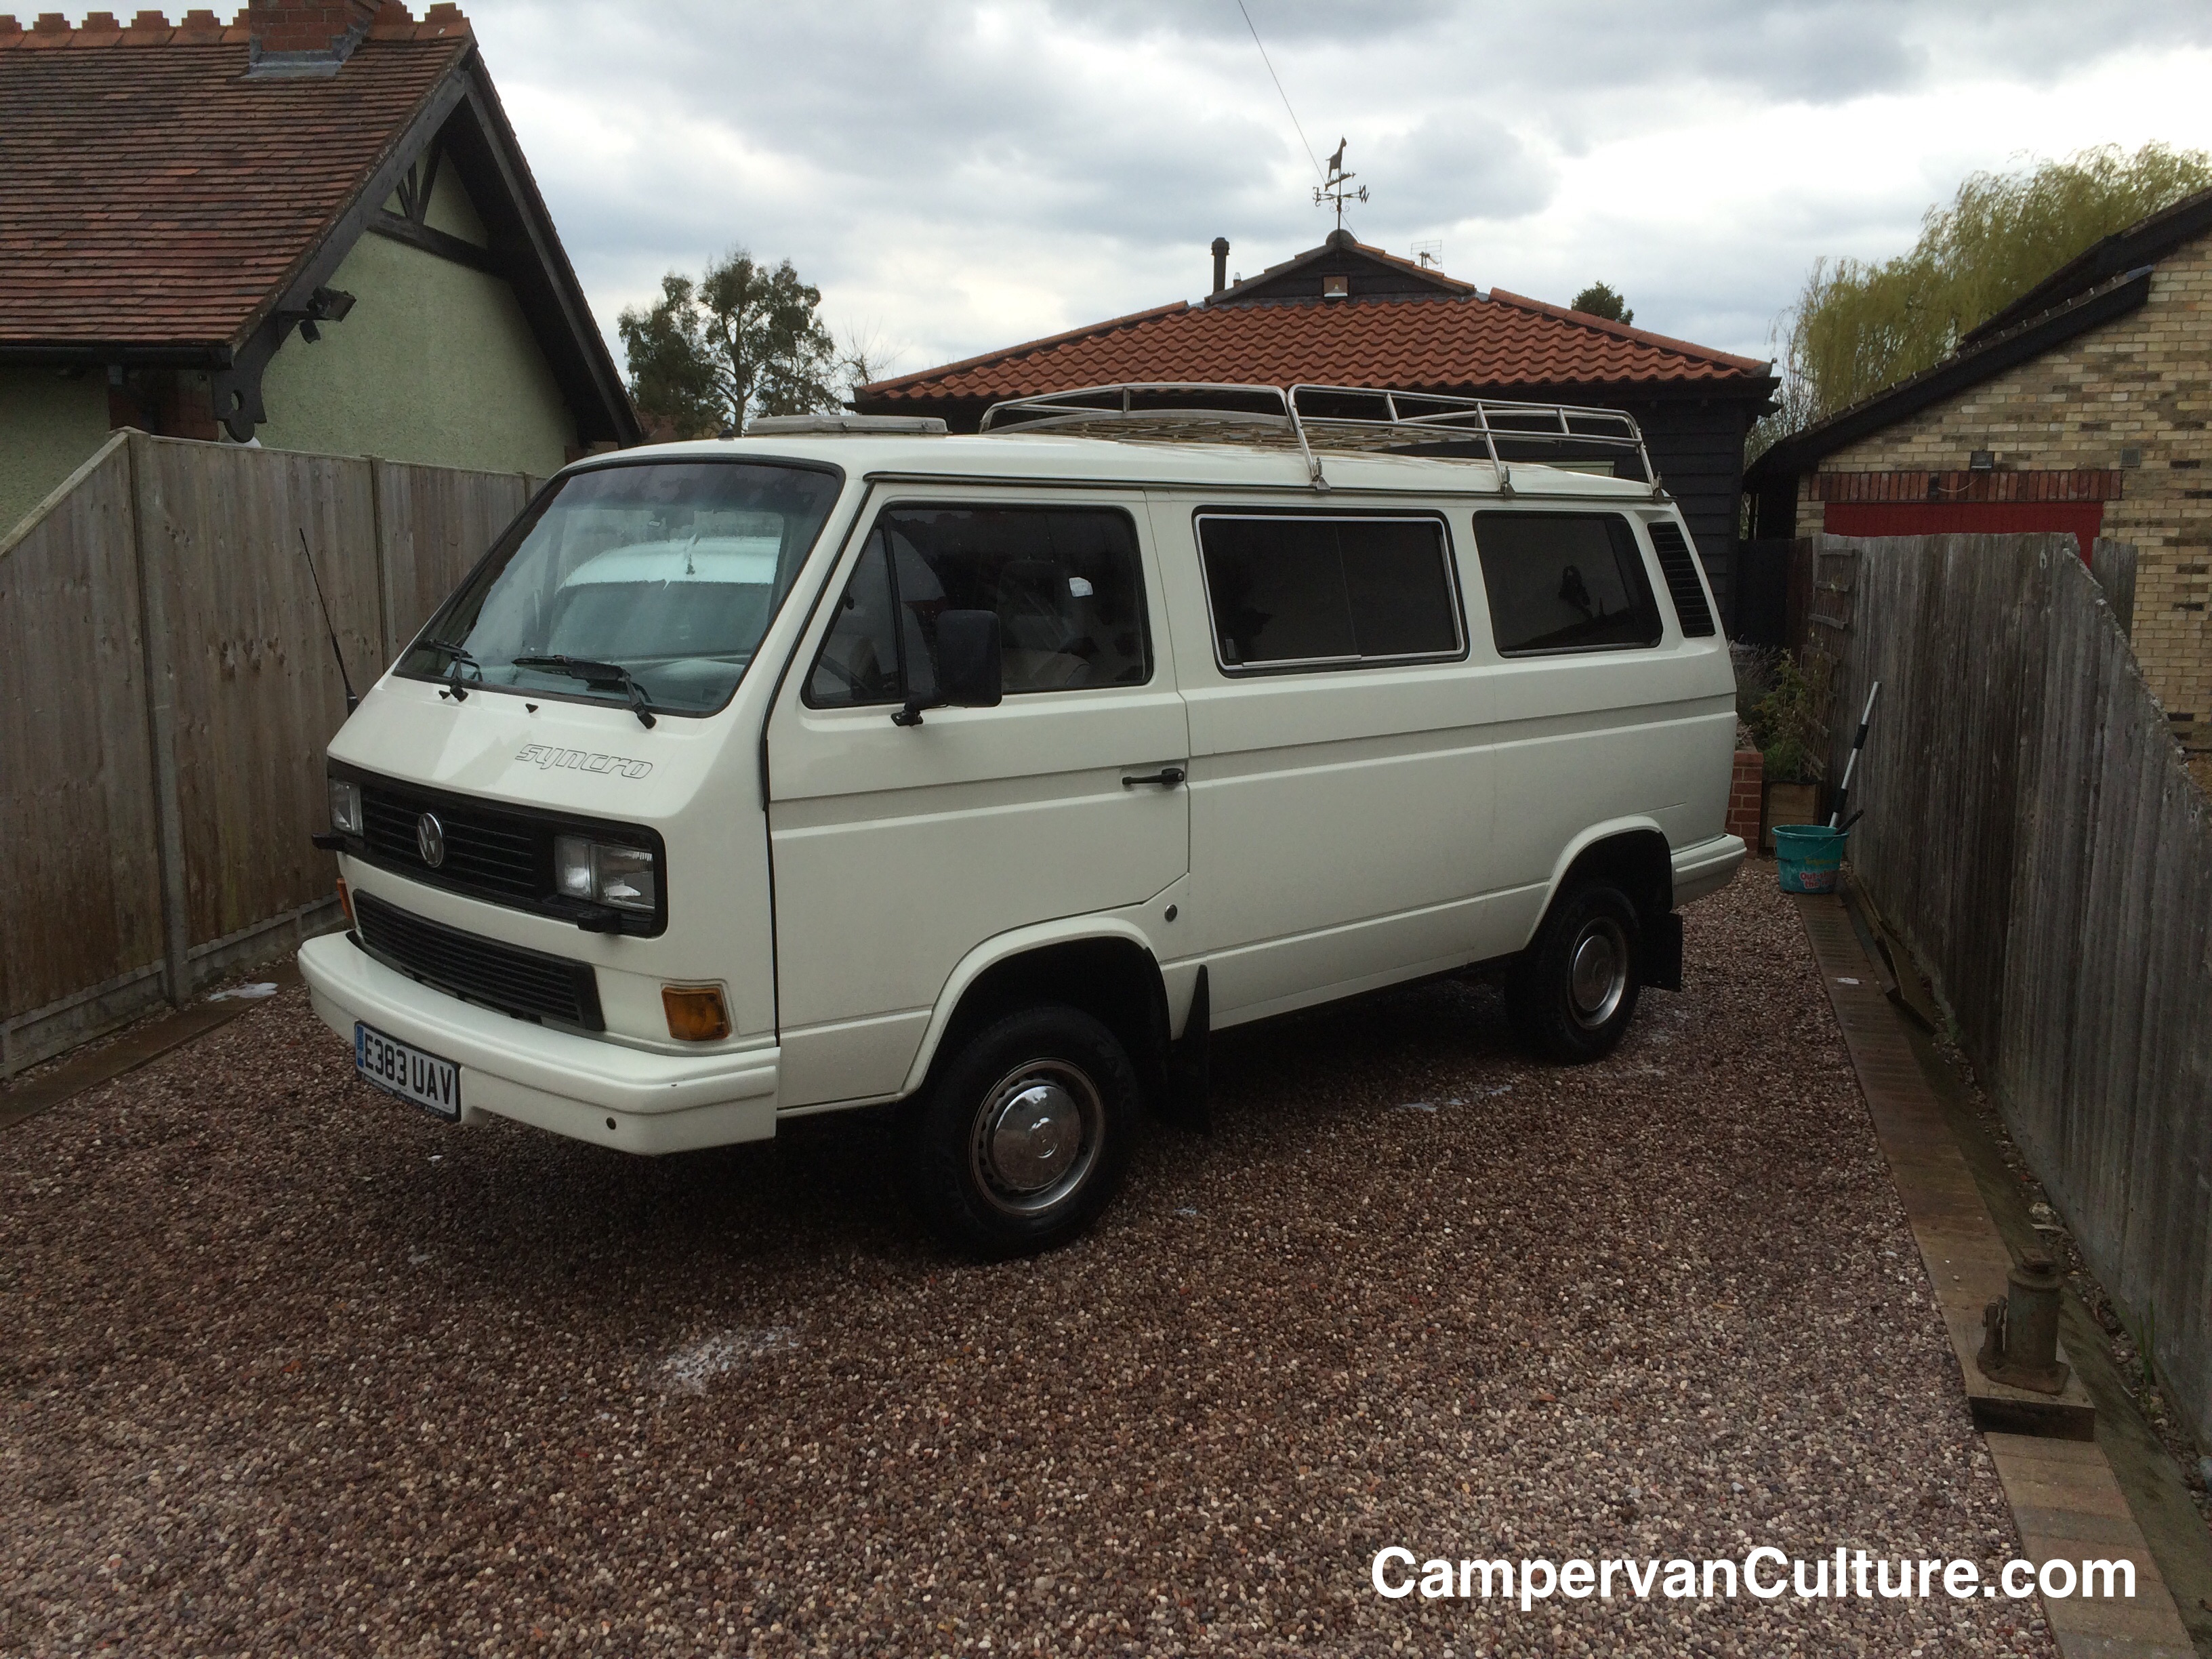 For Sale Campervanculture Com